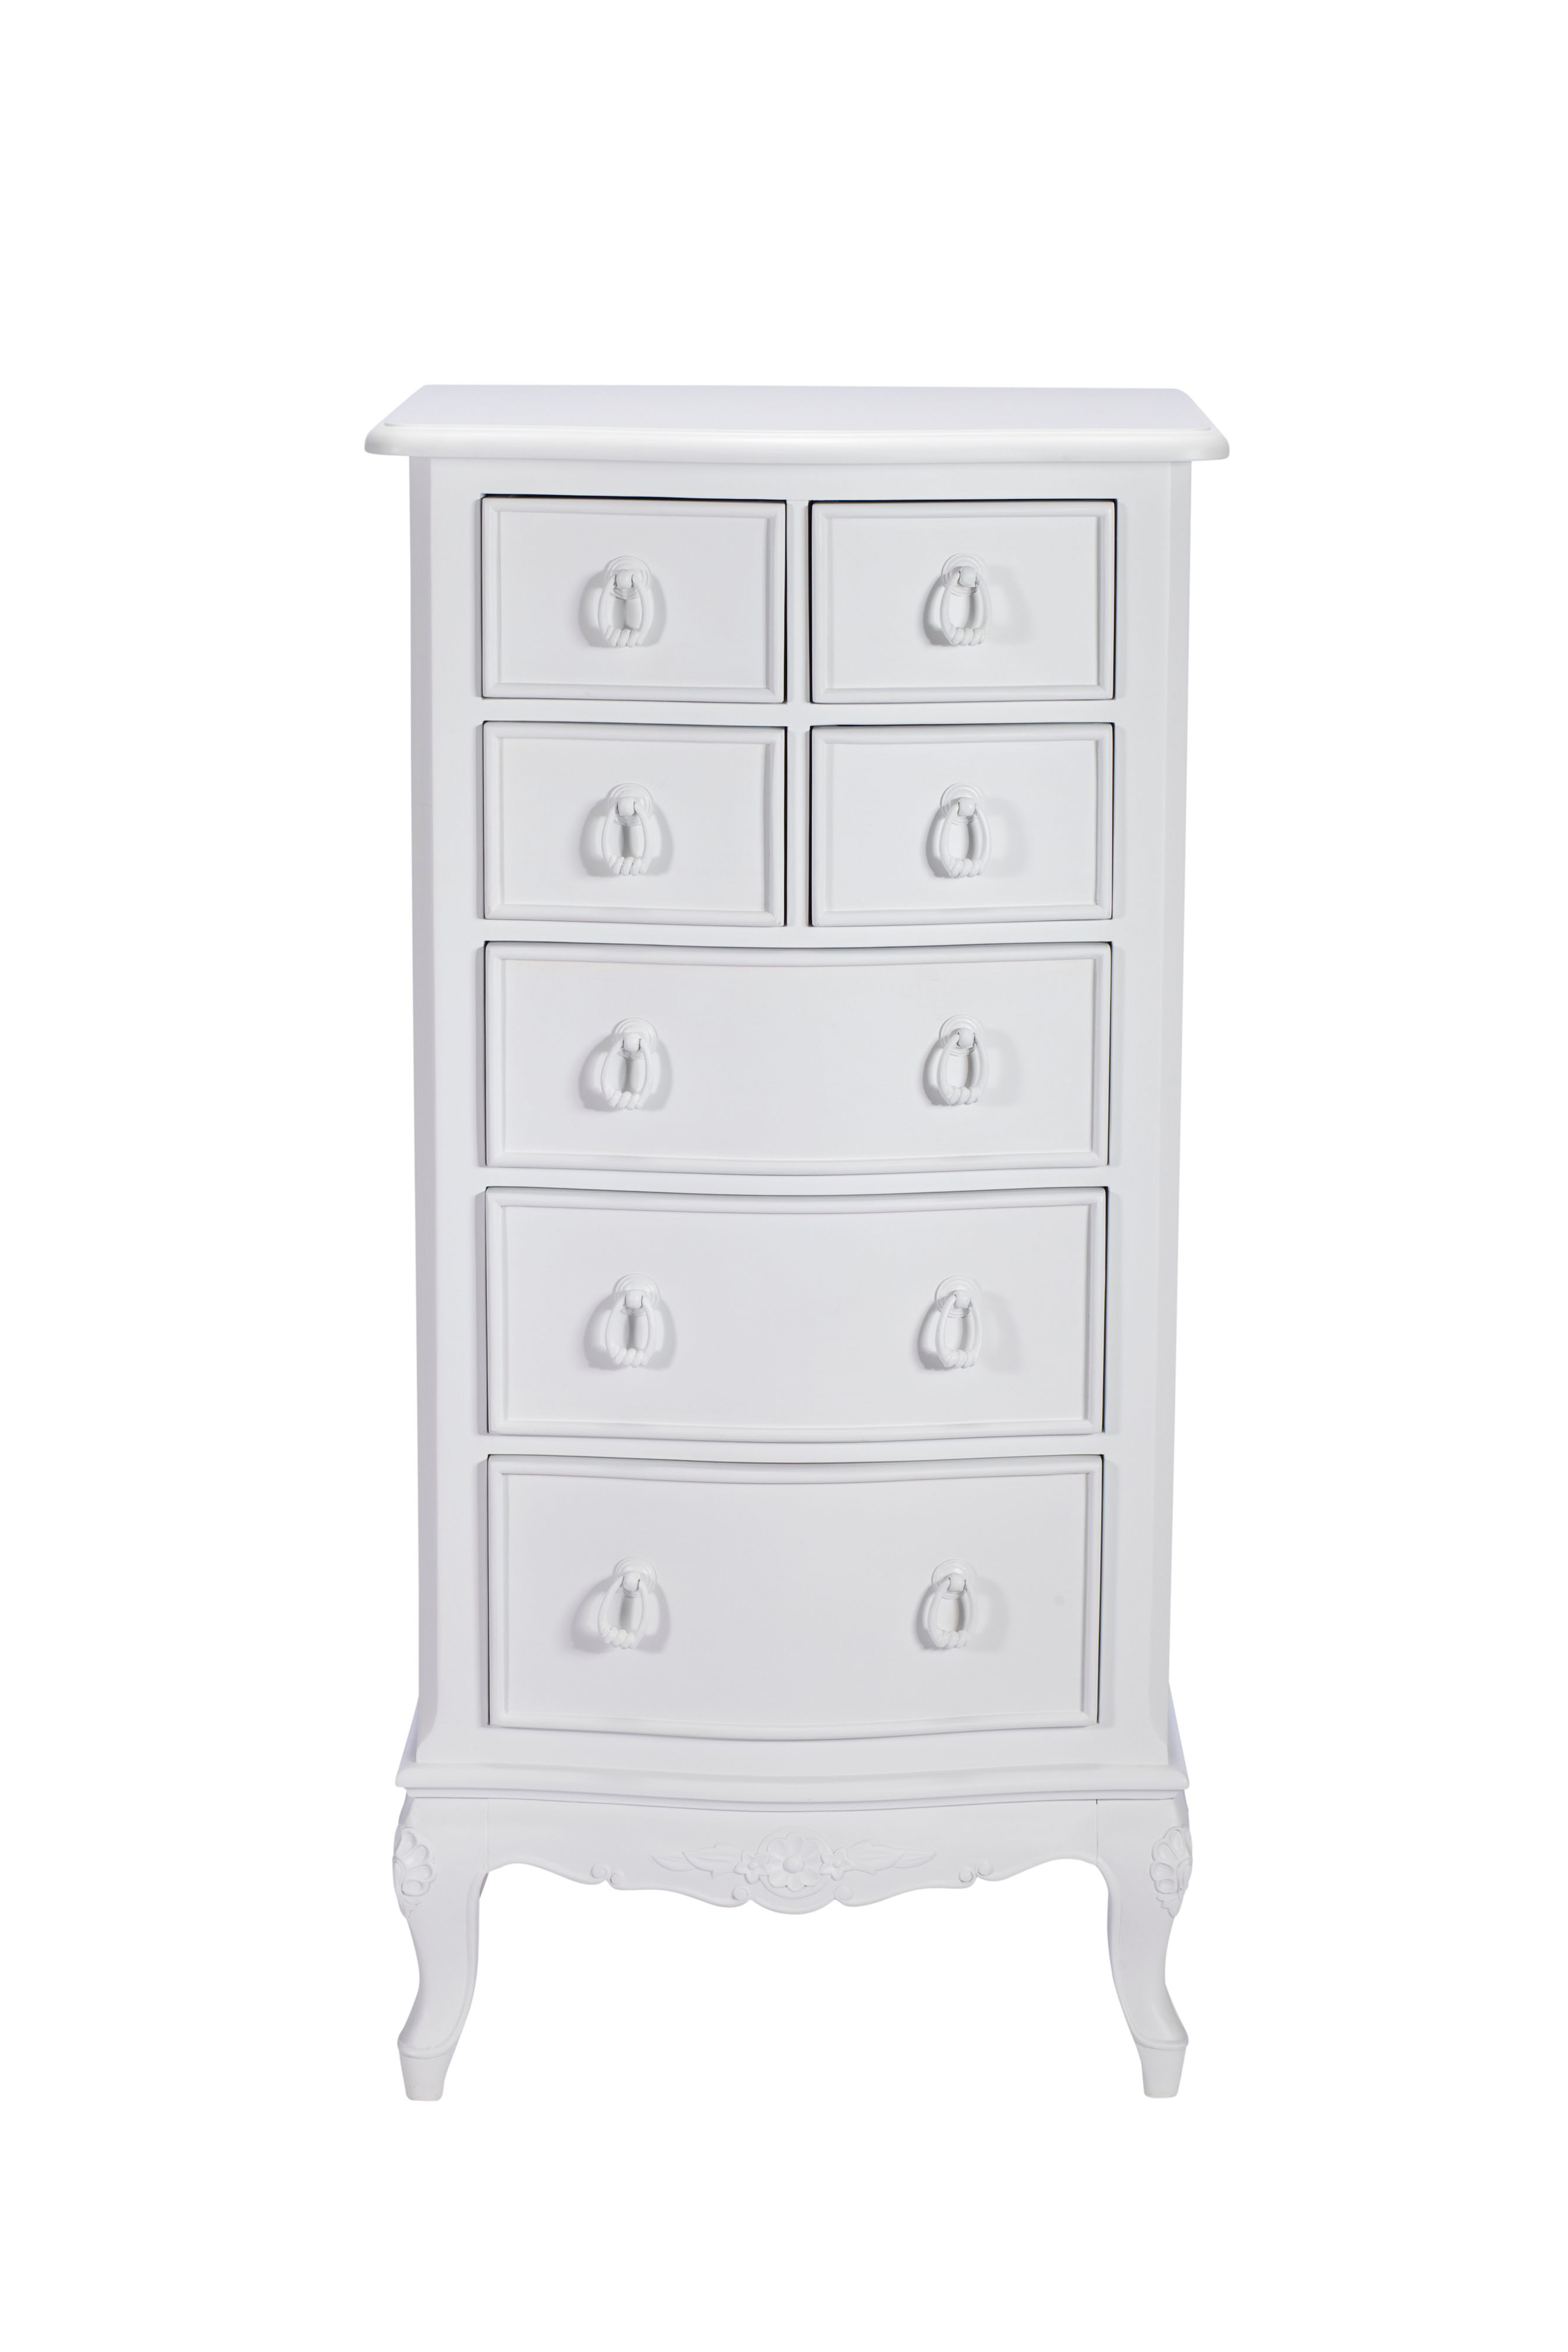 products evans chic feb shabby ivory wadeford unni of drawers chest